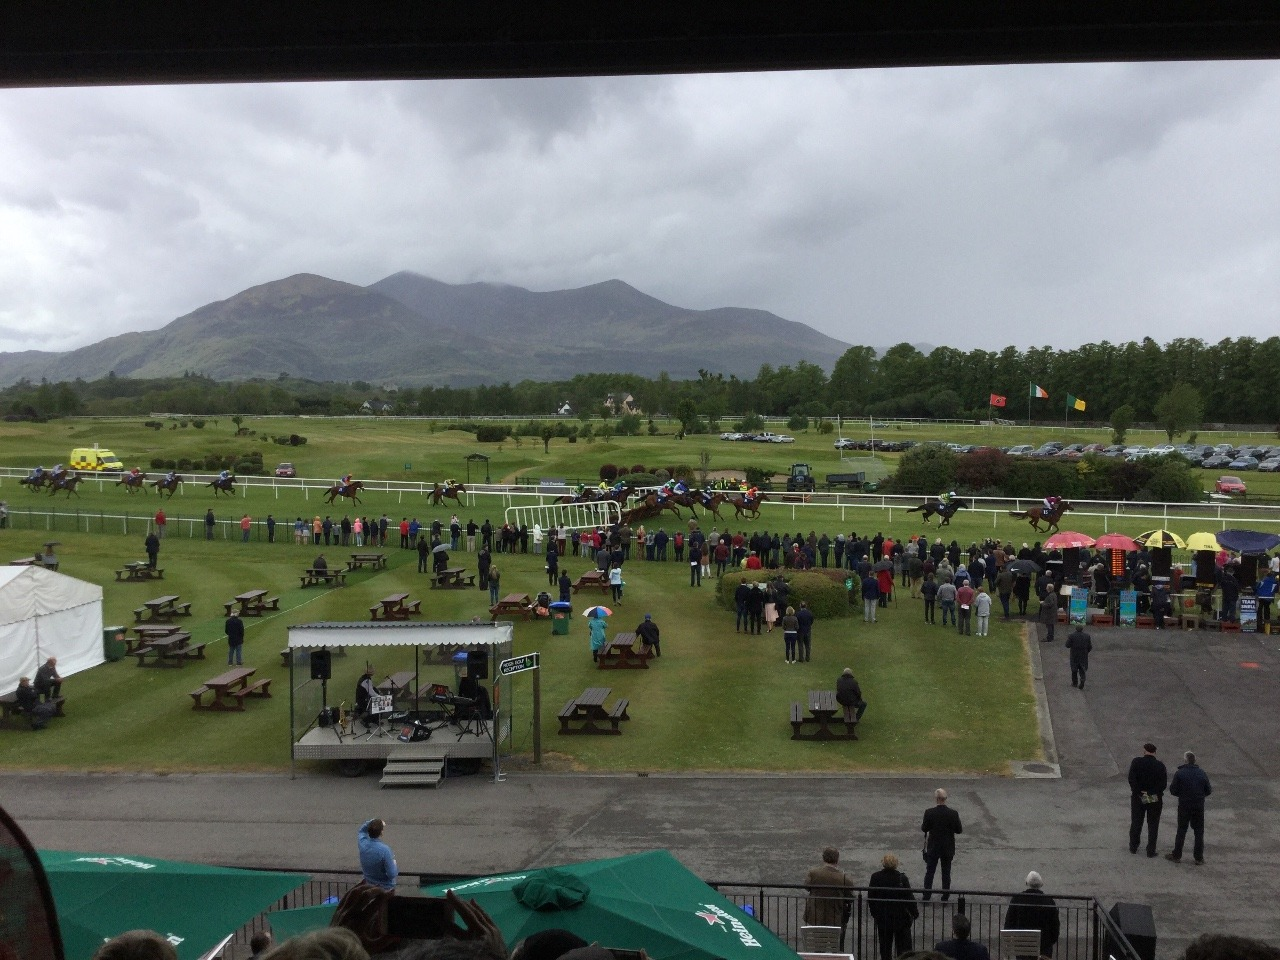 The most beautiful racecourse I've been to.